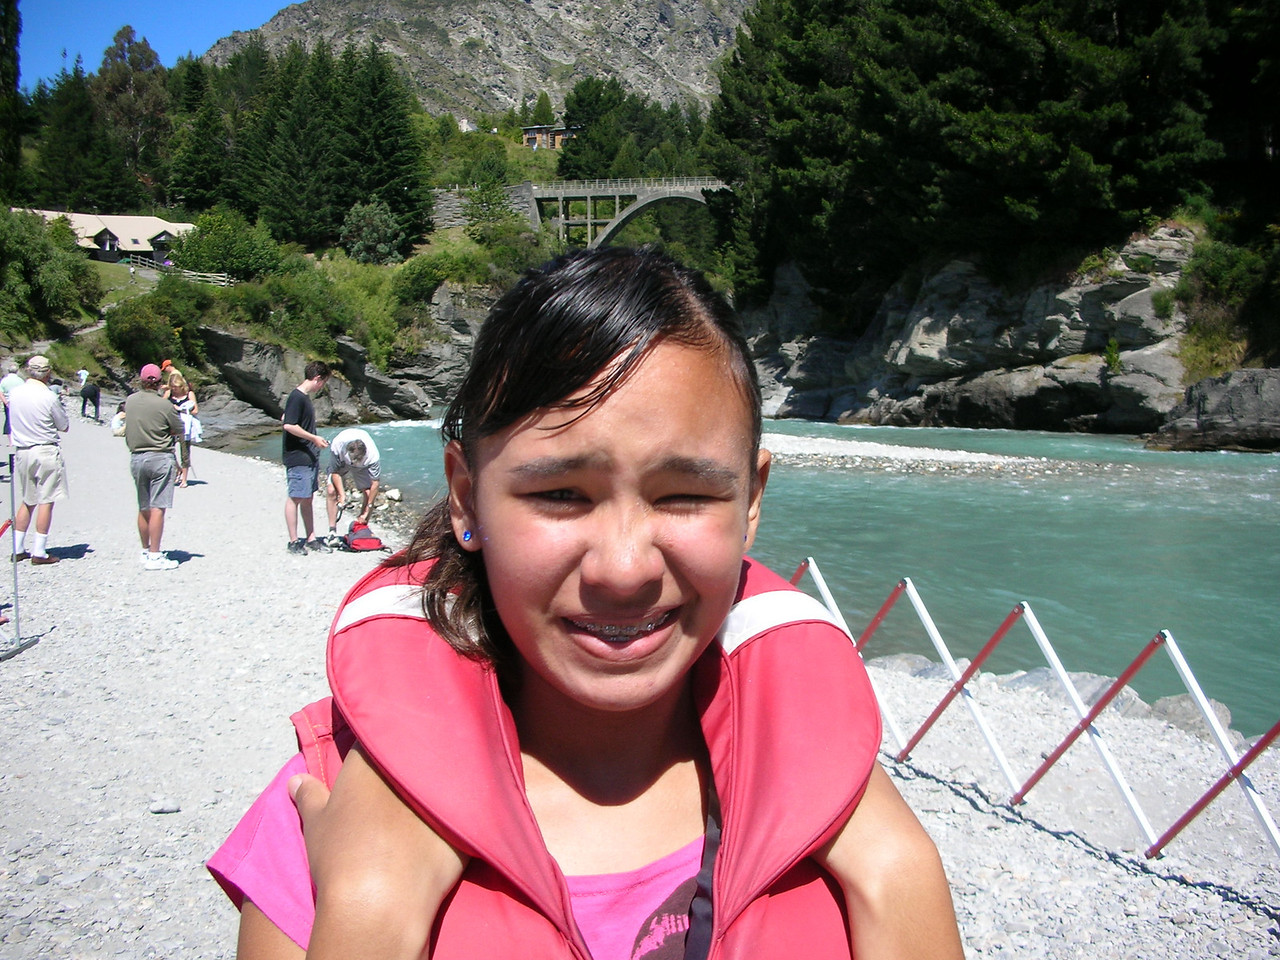 Naomi with her lifejacket for jet boating.